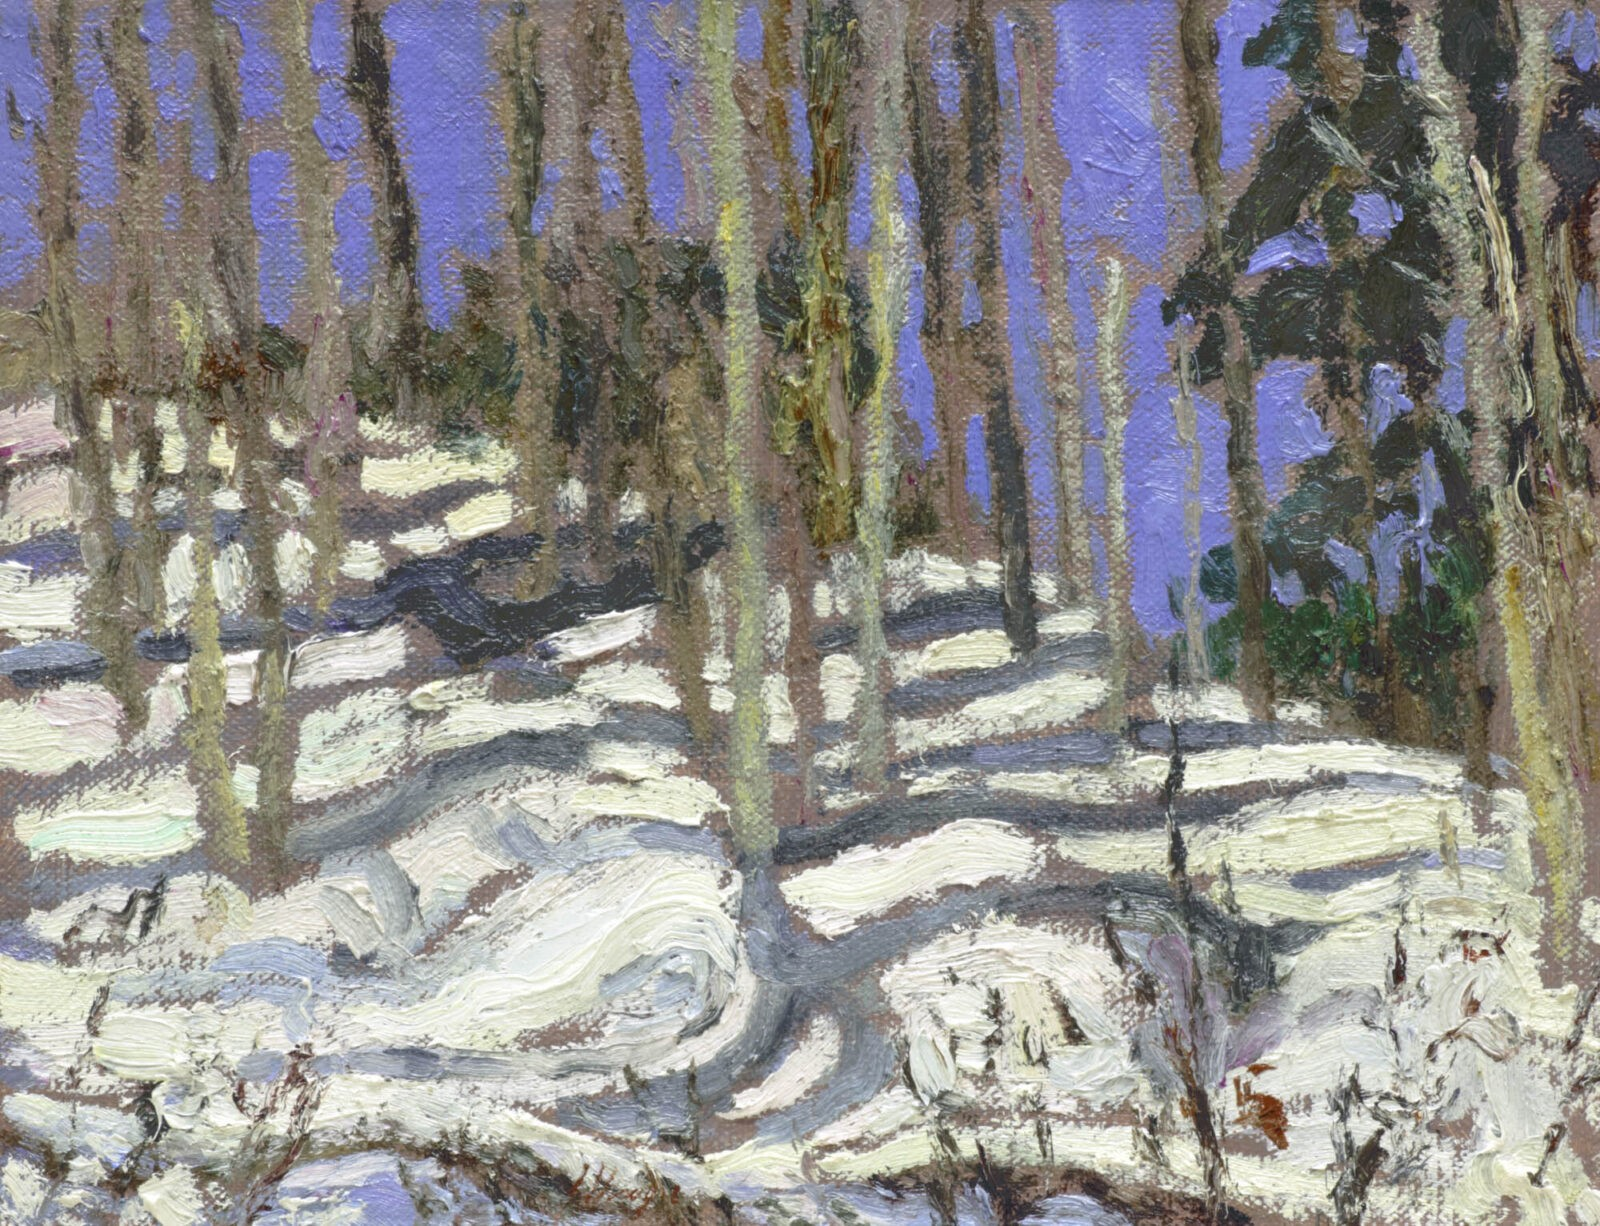 Liza Visagie - Winter's Hill. Oil on Linen 5.75 x 7.25 inches